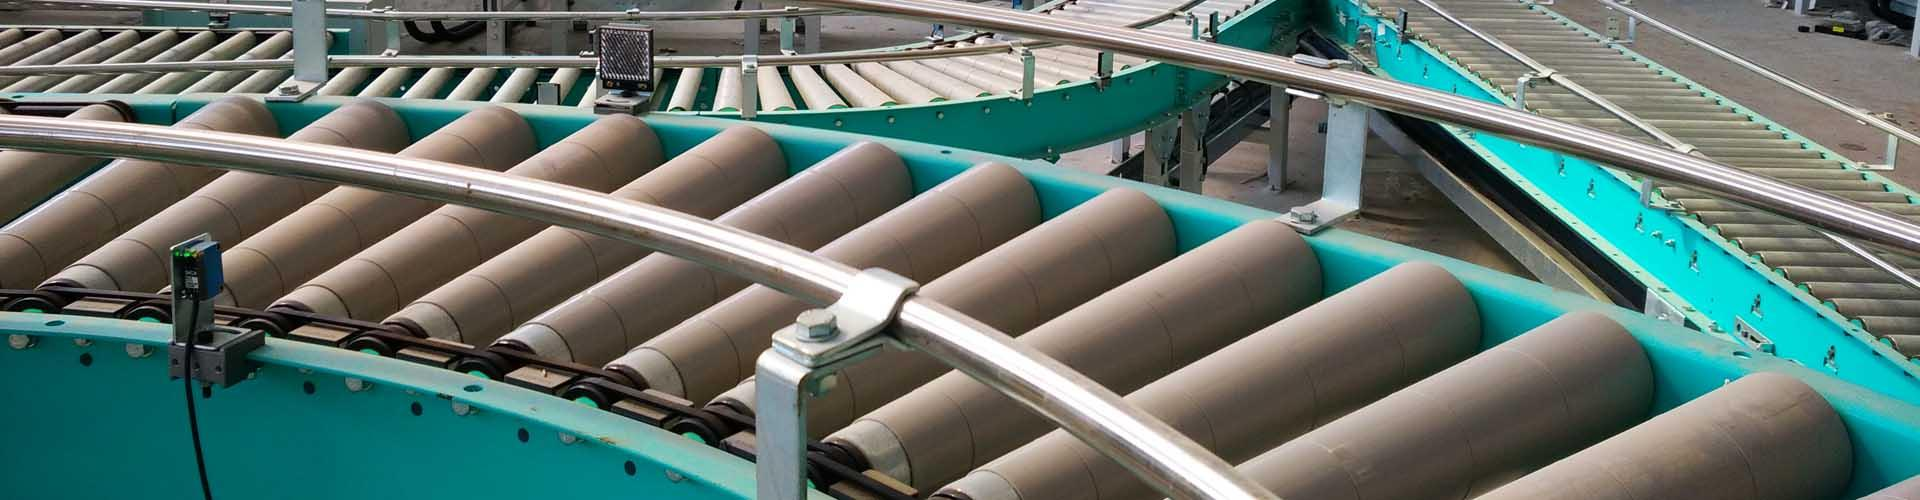 2650 Series Poly-Vee Pulley Tapered Sleeve Conveyor Roller